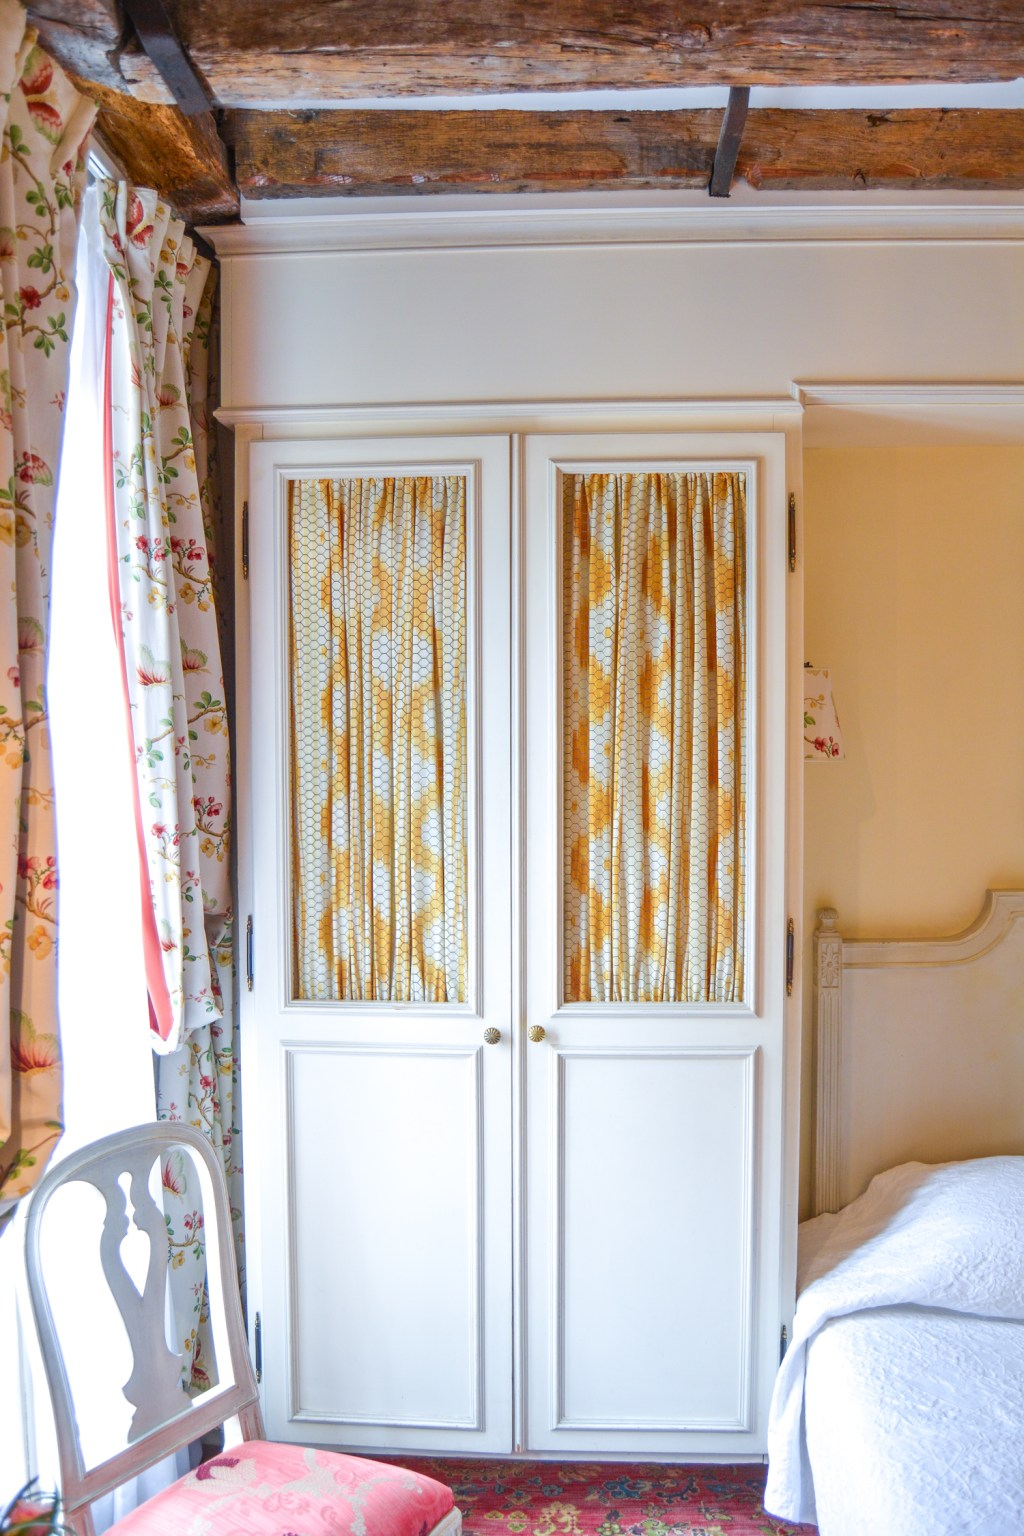 Hotel Caron de Beaumarchais in Paris - France Travel - @lacegraceblog1